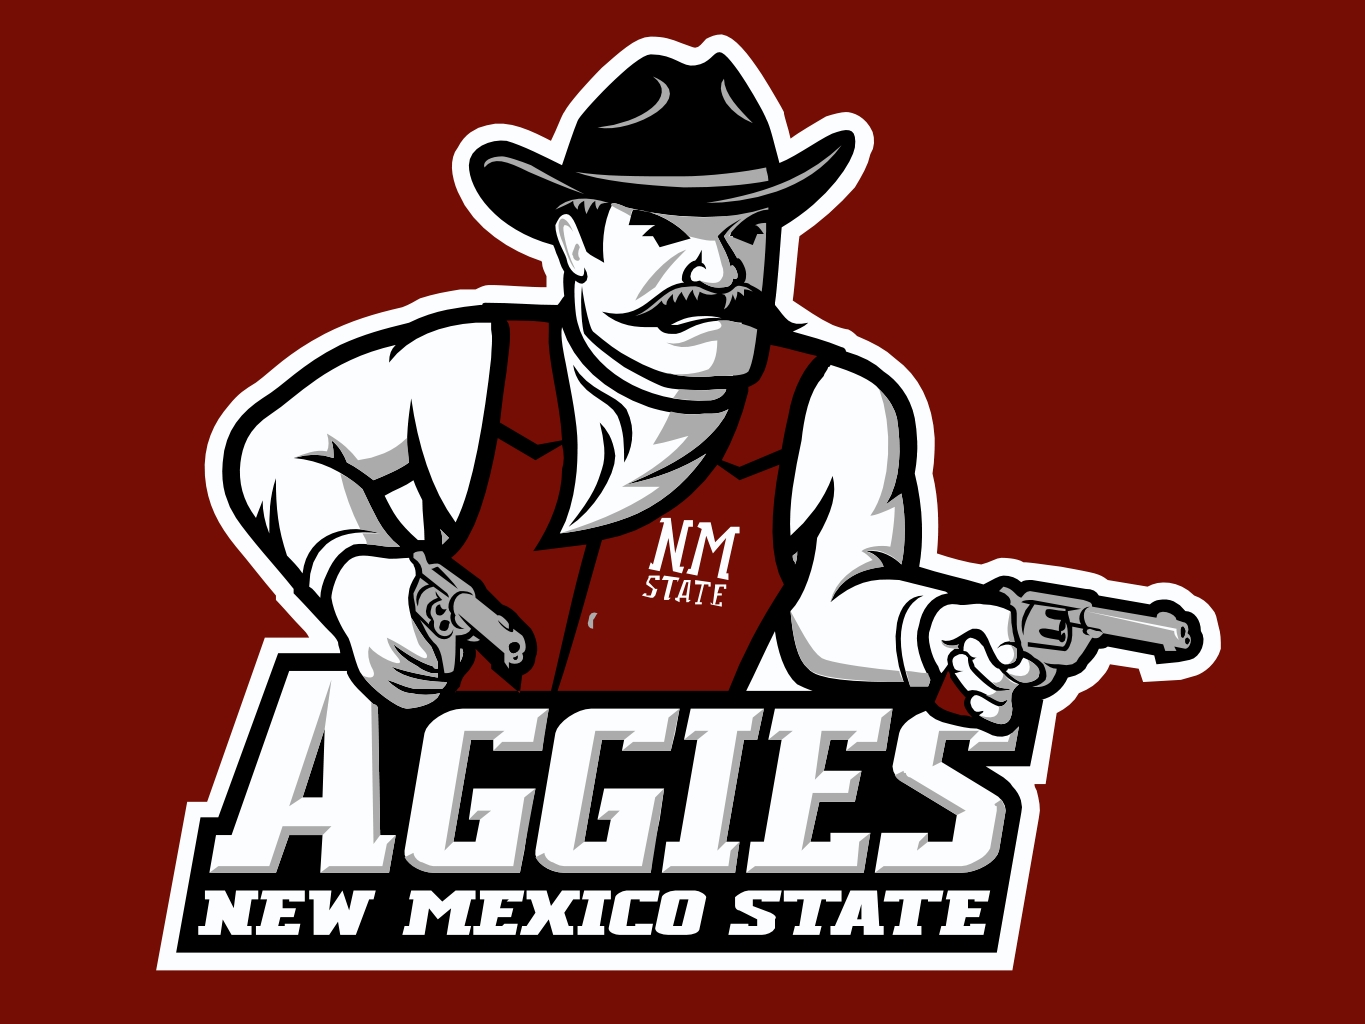 New Mexico State Aggies Tickets